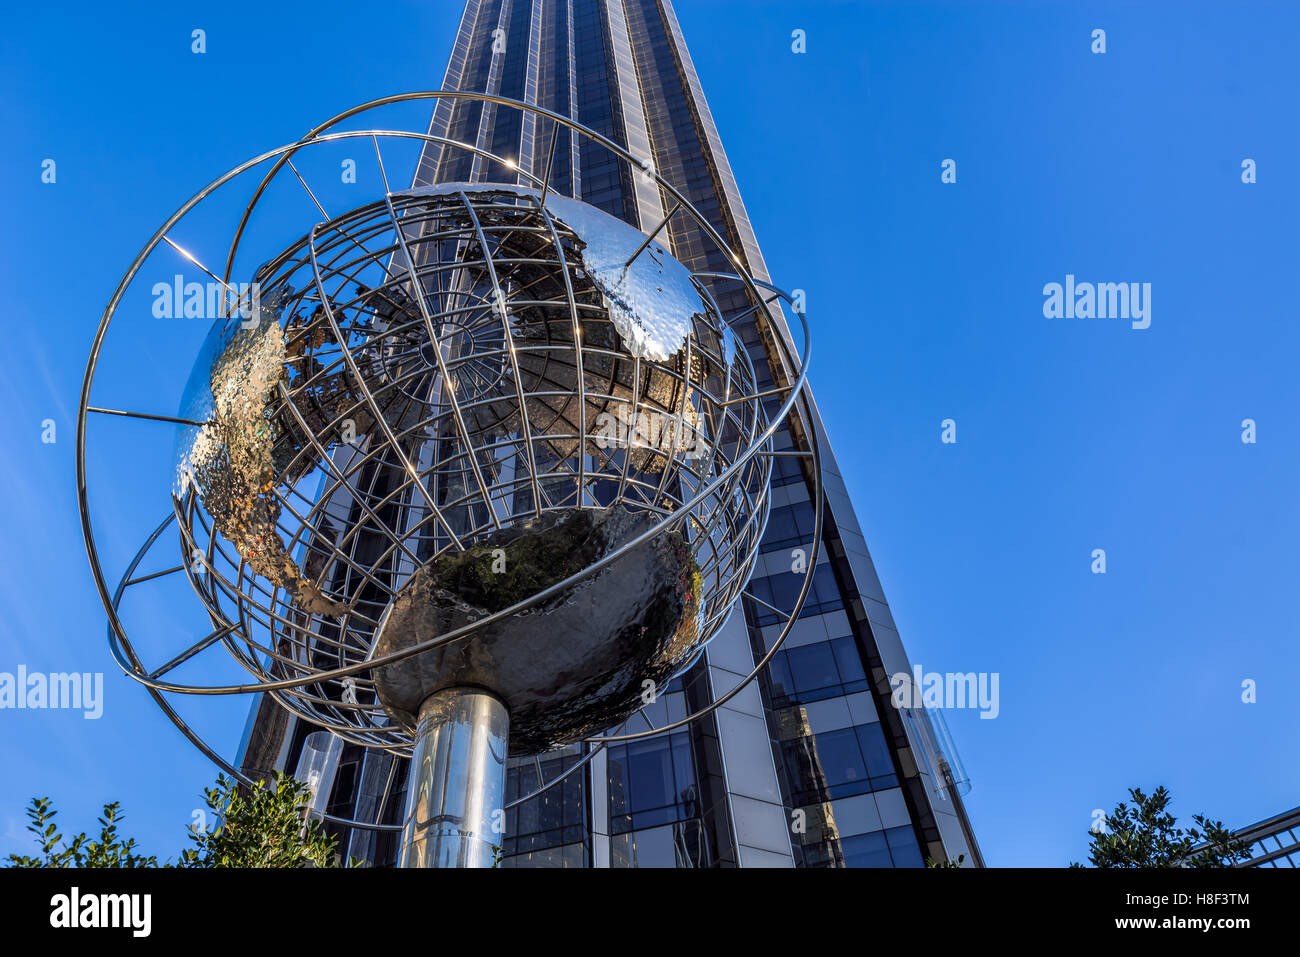 Trump International Hotel and Tower skyscraper with metal globe sculpture. Midtown, Manhattan, New York City - Stock Image